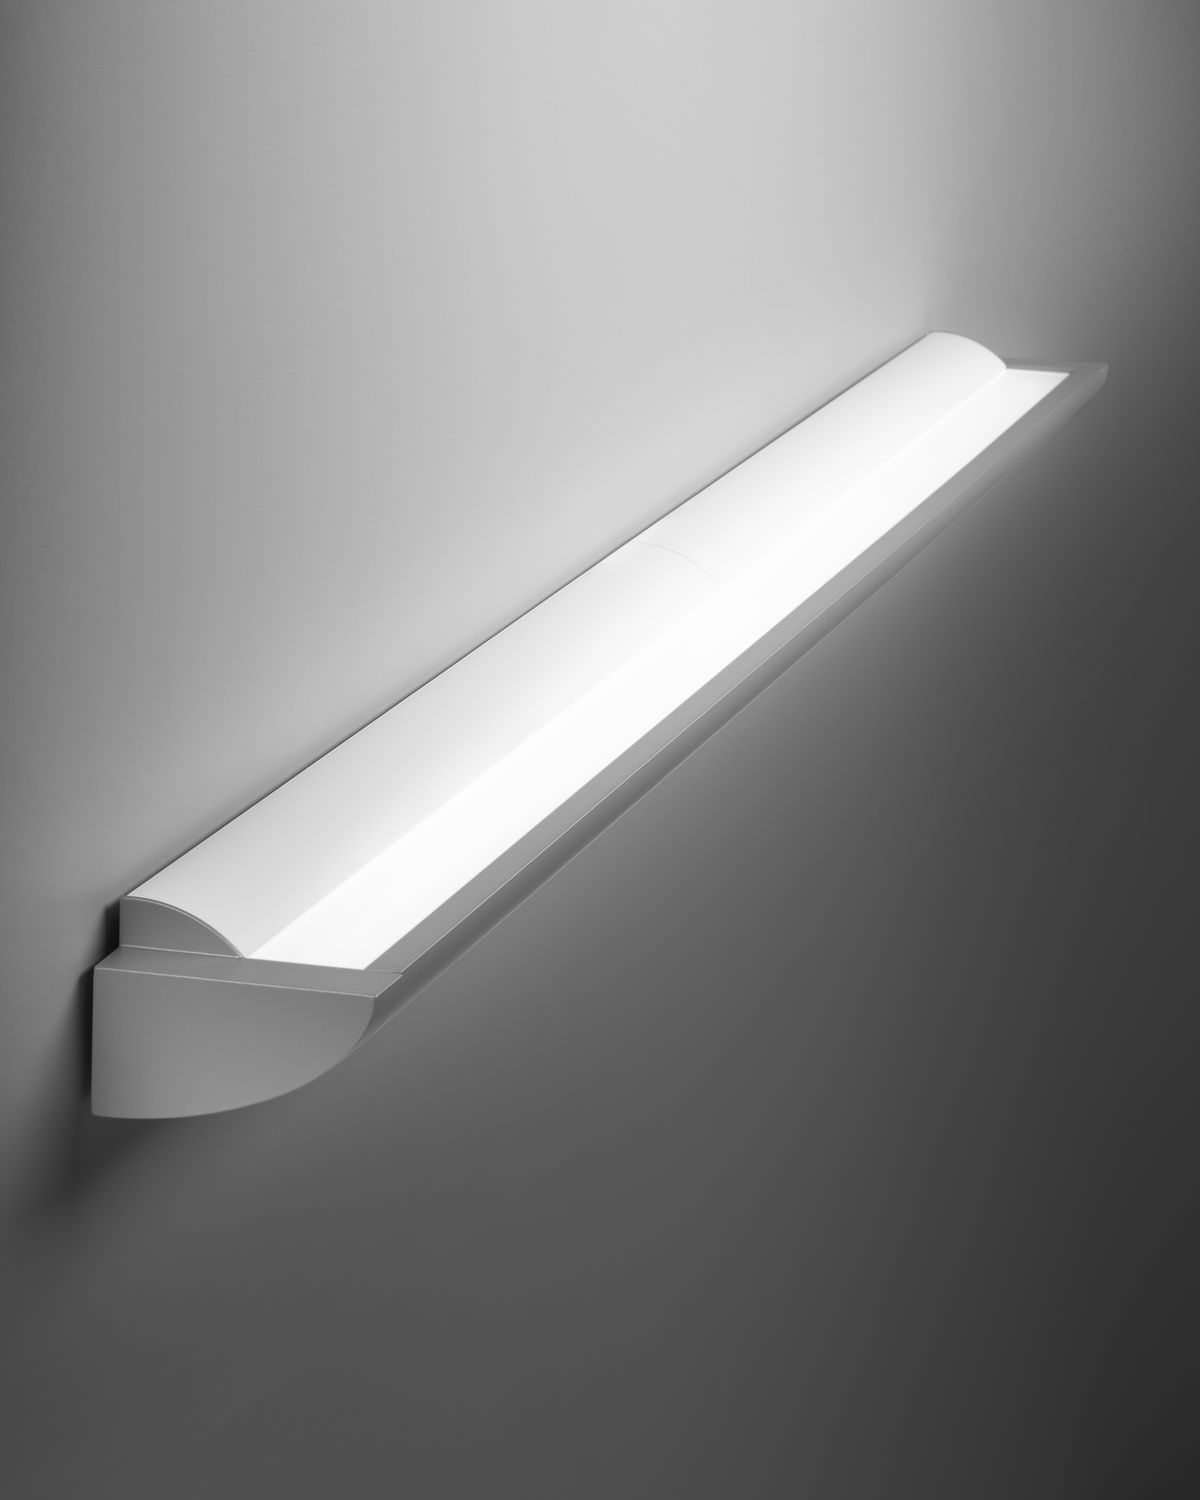 Wall Mounted Cfl Fixture : Timeless Wall mounted fluorescent light fixtures Warisan Lighting